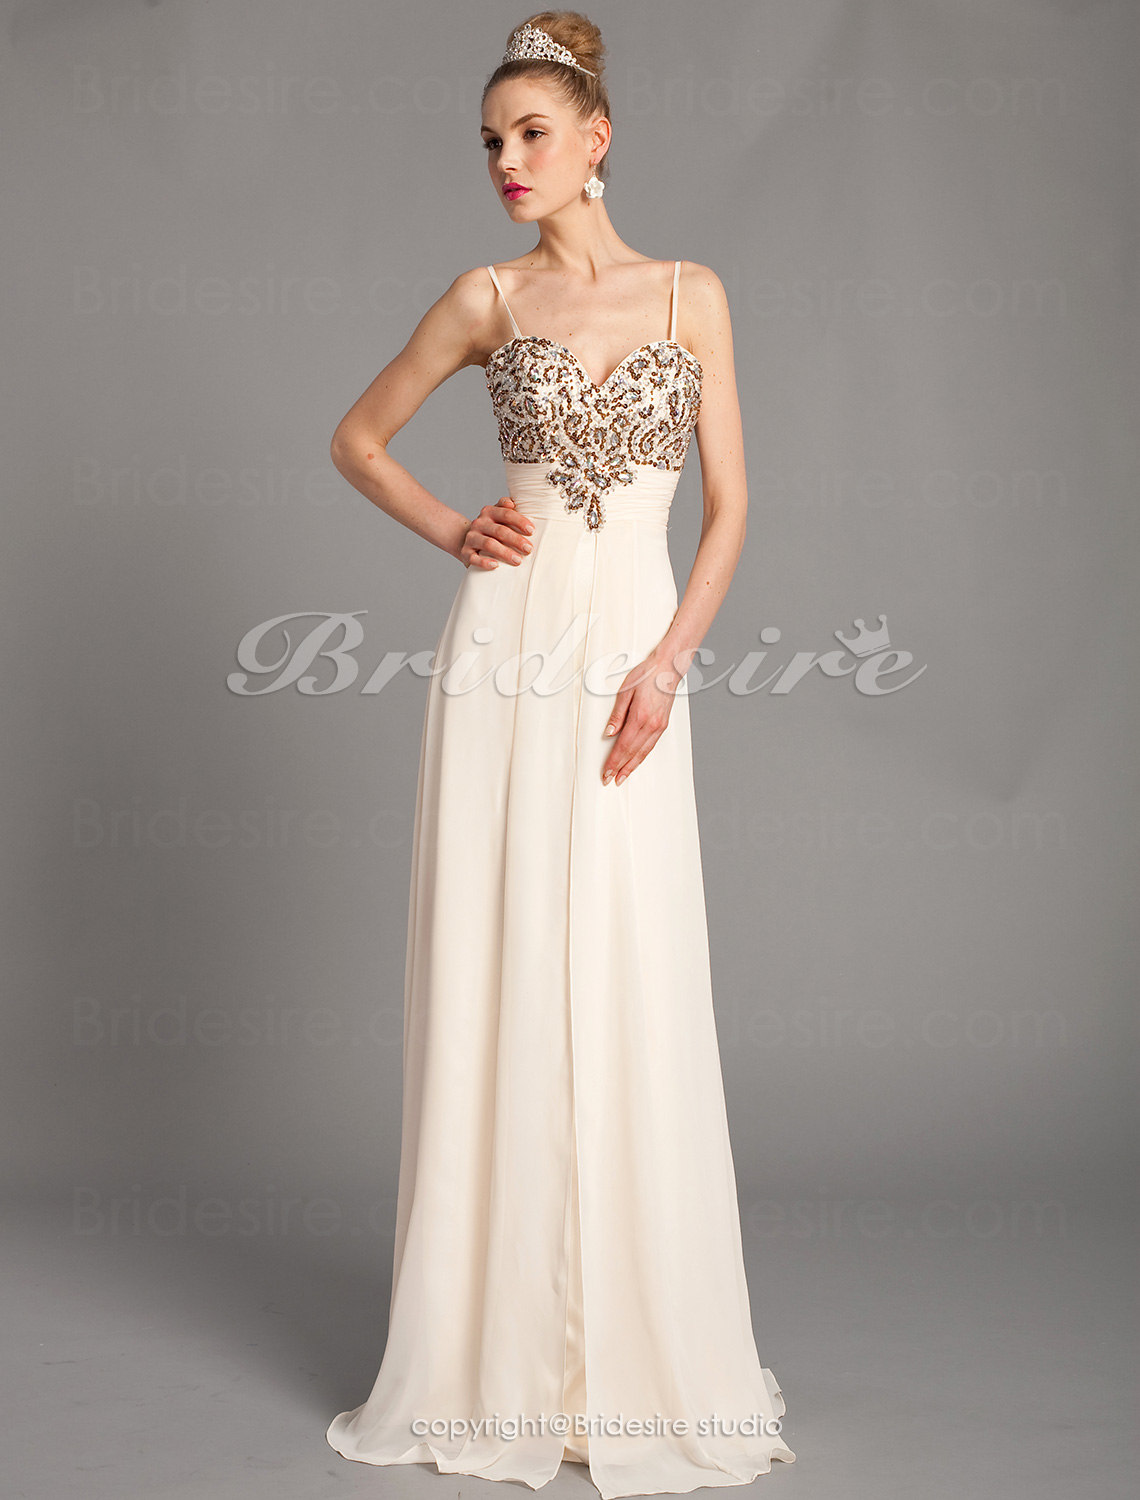 A-line Unique Spaghetti Straps Sweetheart Chiffon Floor-length Evening Dresses